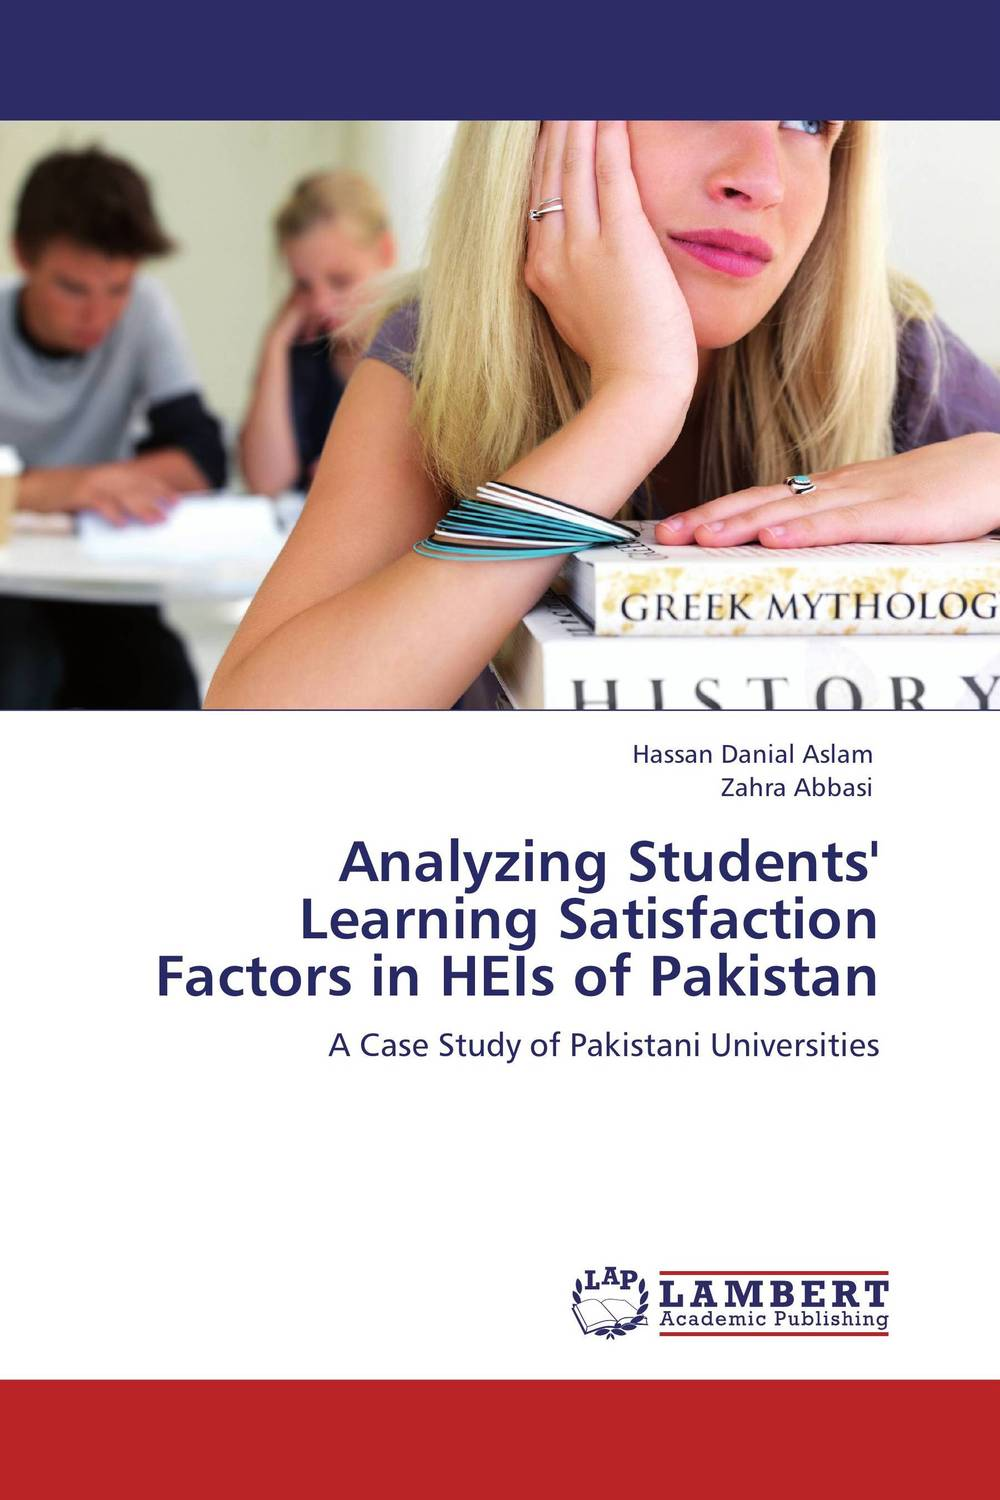 Analyzing Students' Learning Satisfaction Factors in HEIs of Pakistan oliver goldsmith an enquiry into the present state of polite learning in europe